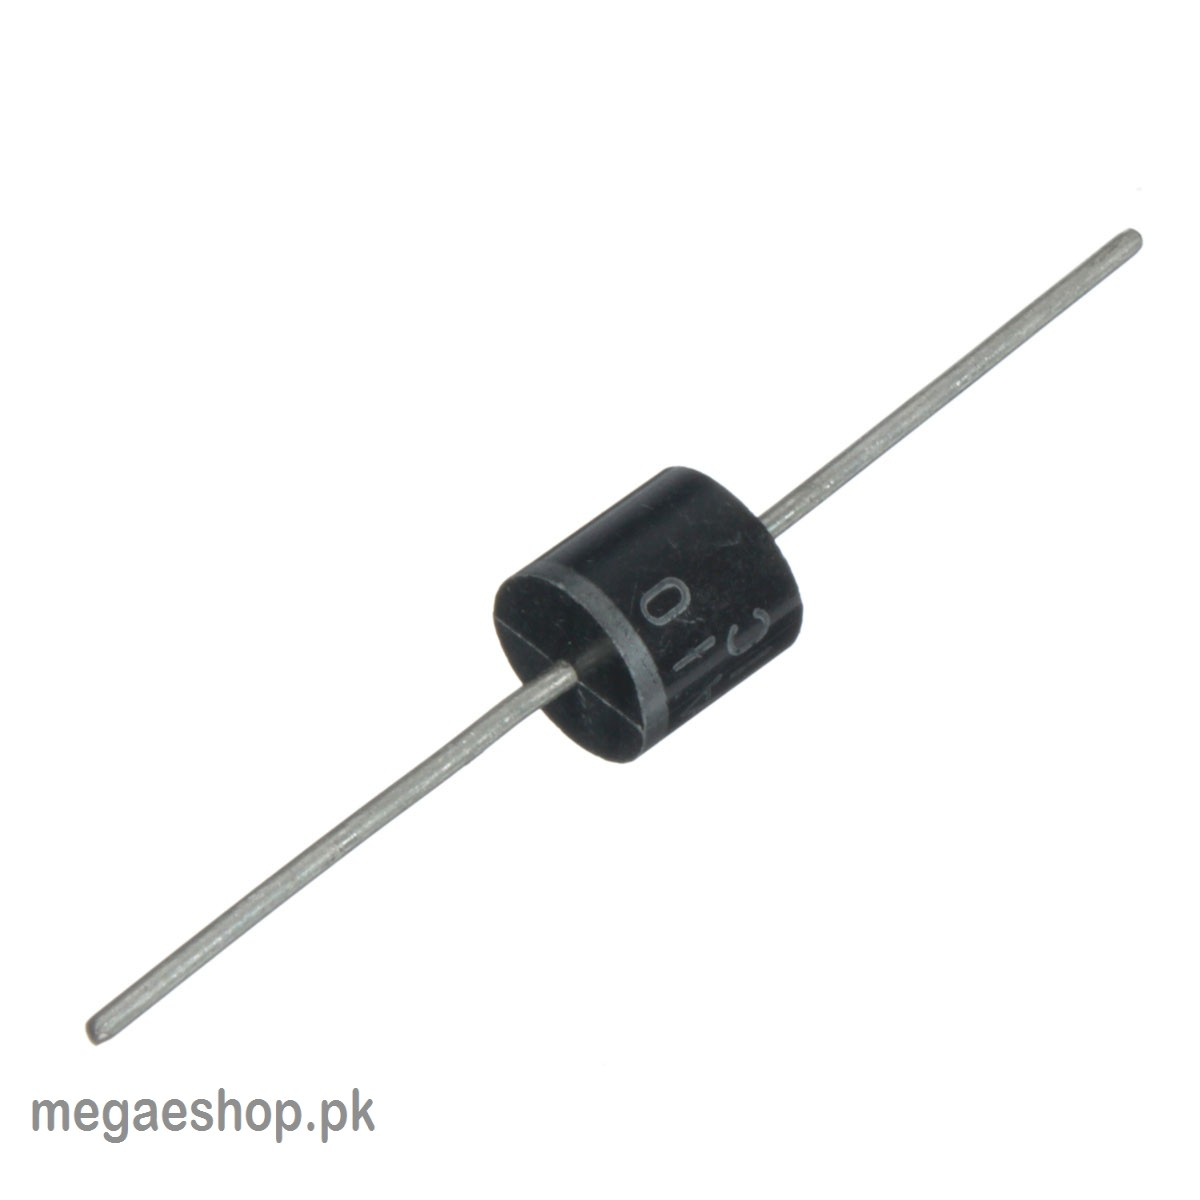 DIODE 10A10  DIODE 10A10  Rectifying Diode  1000V 10A Si-Di